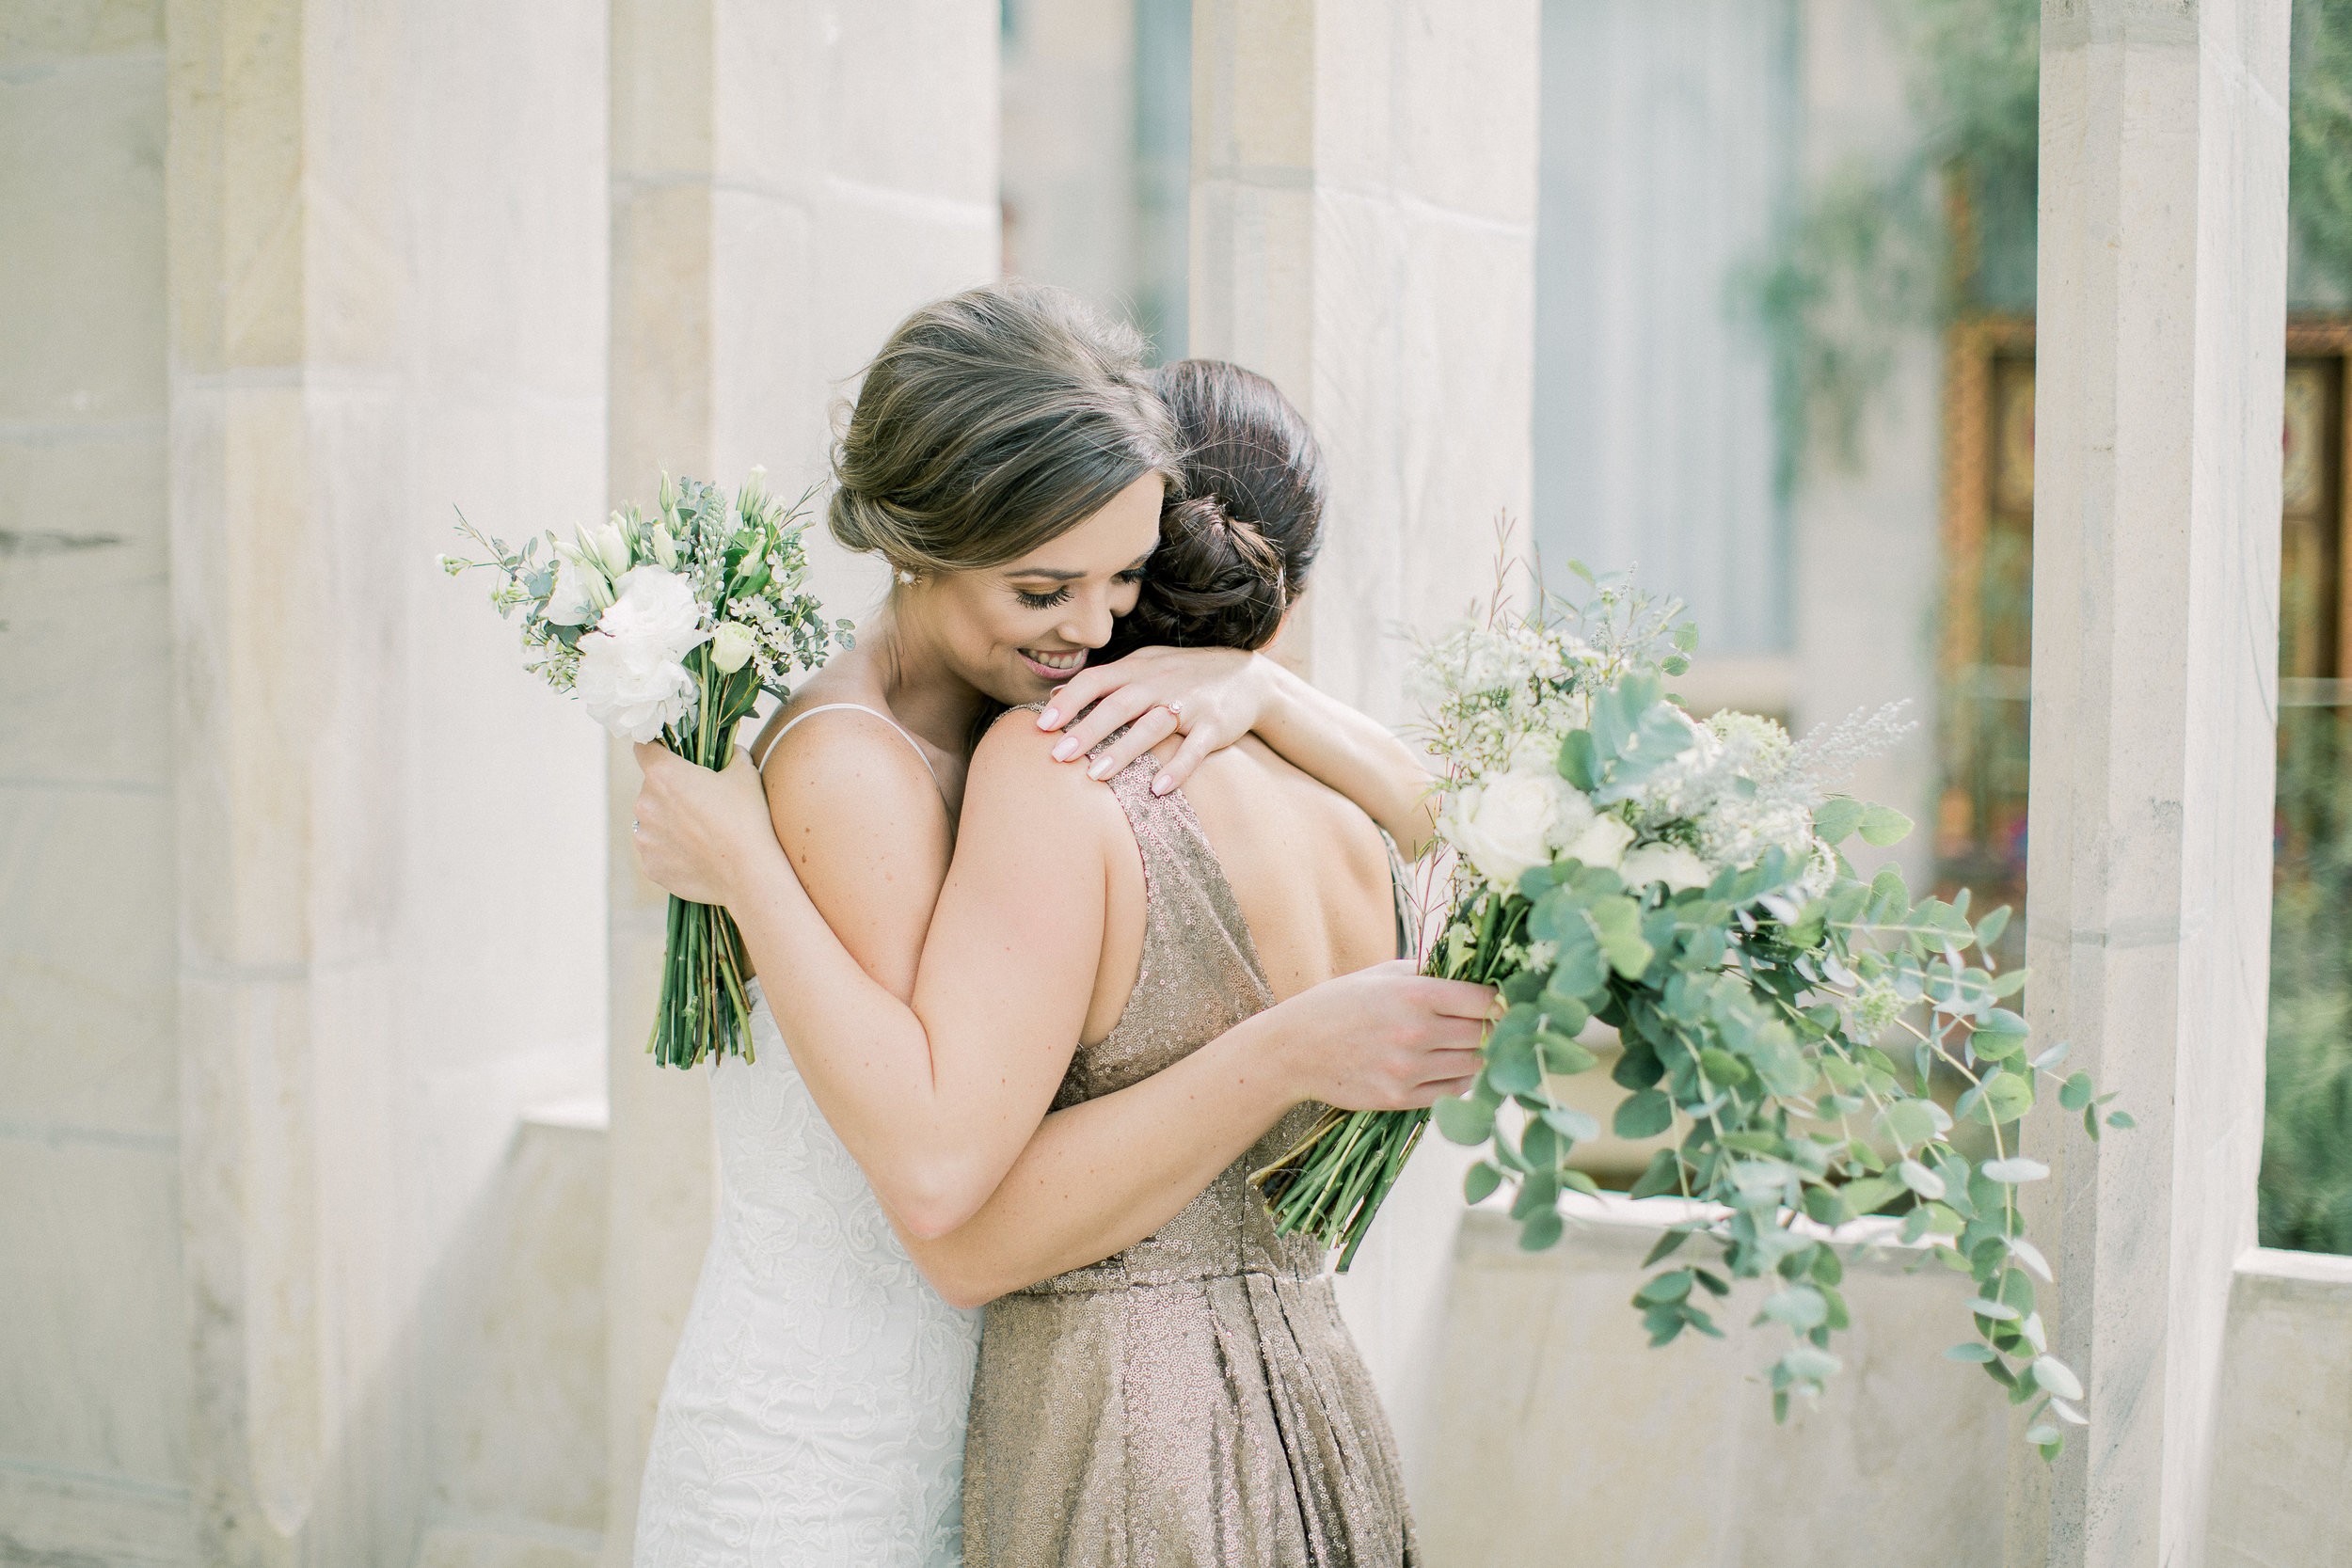 South africa wedding photographer clareece smit photography02.jpg